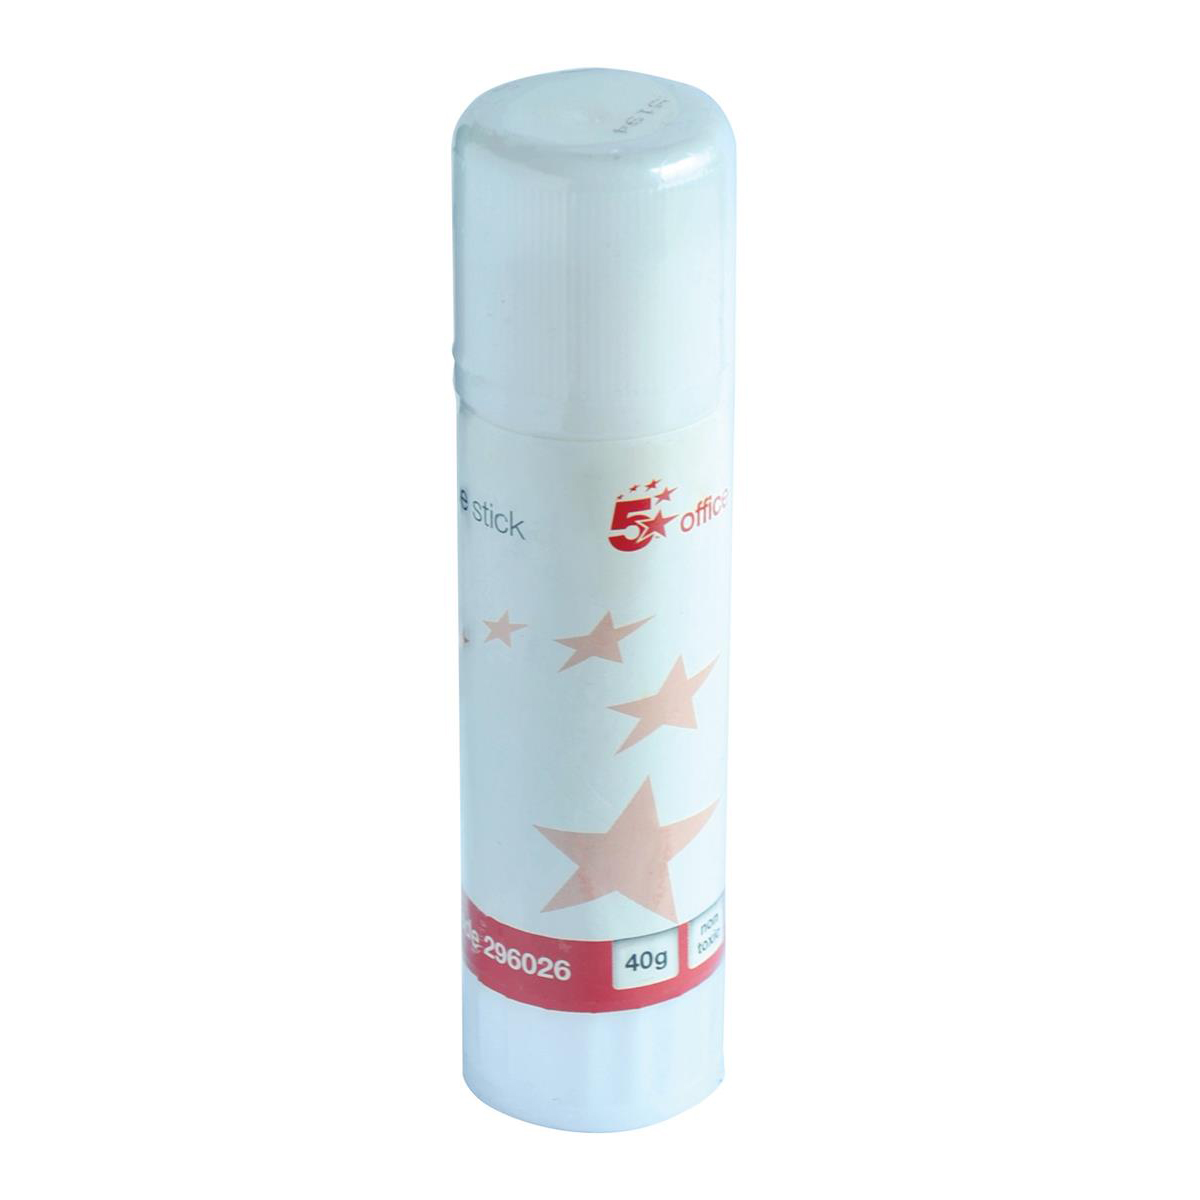 5 Star Office Glue Stick Large 40g [Pack 30]